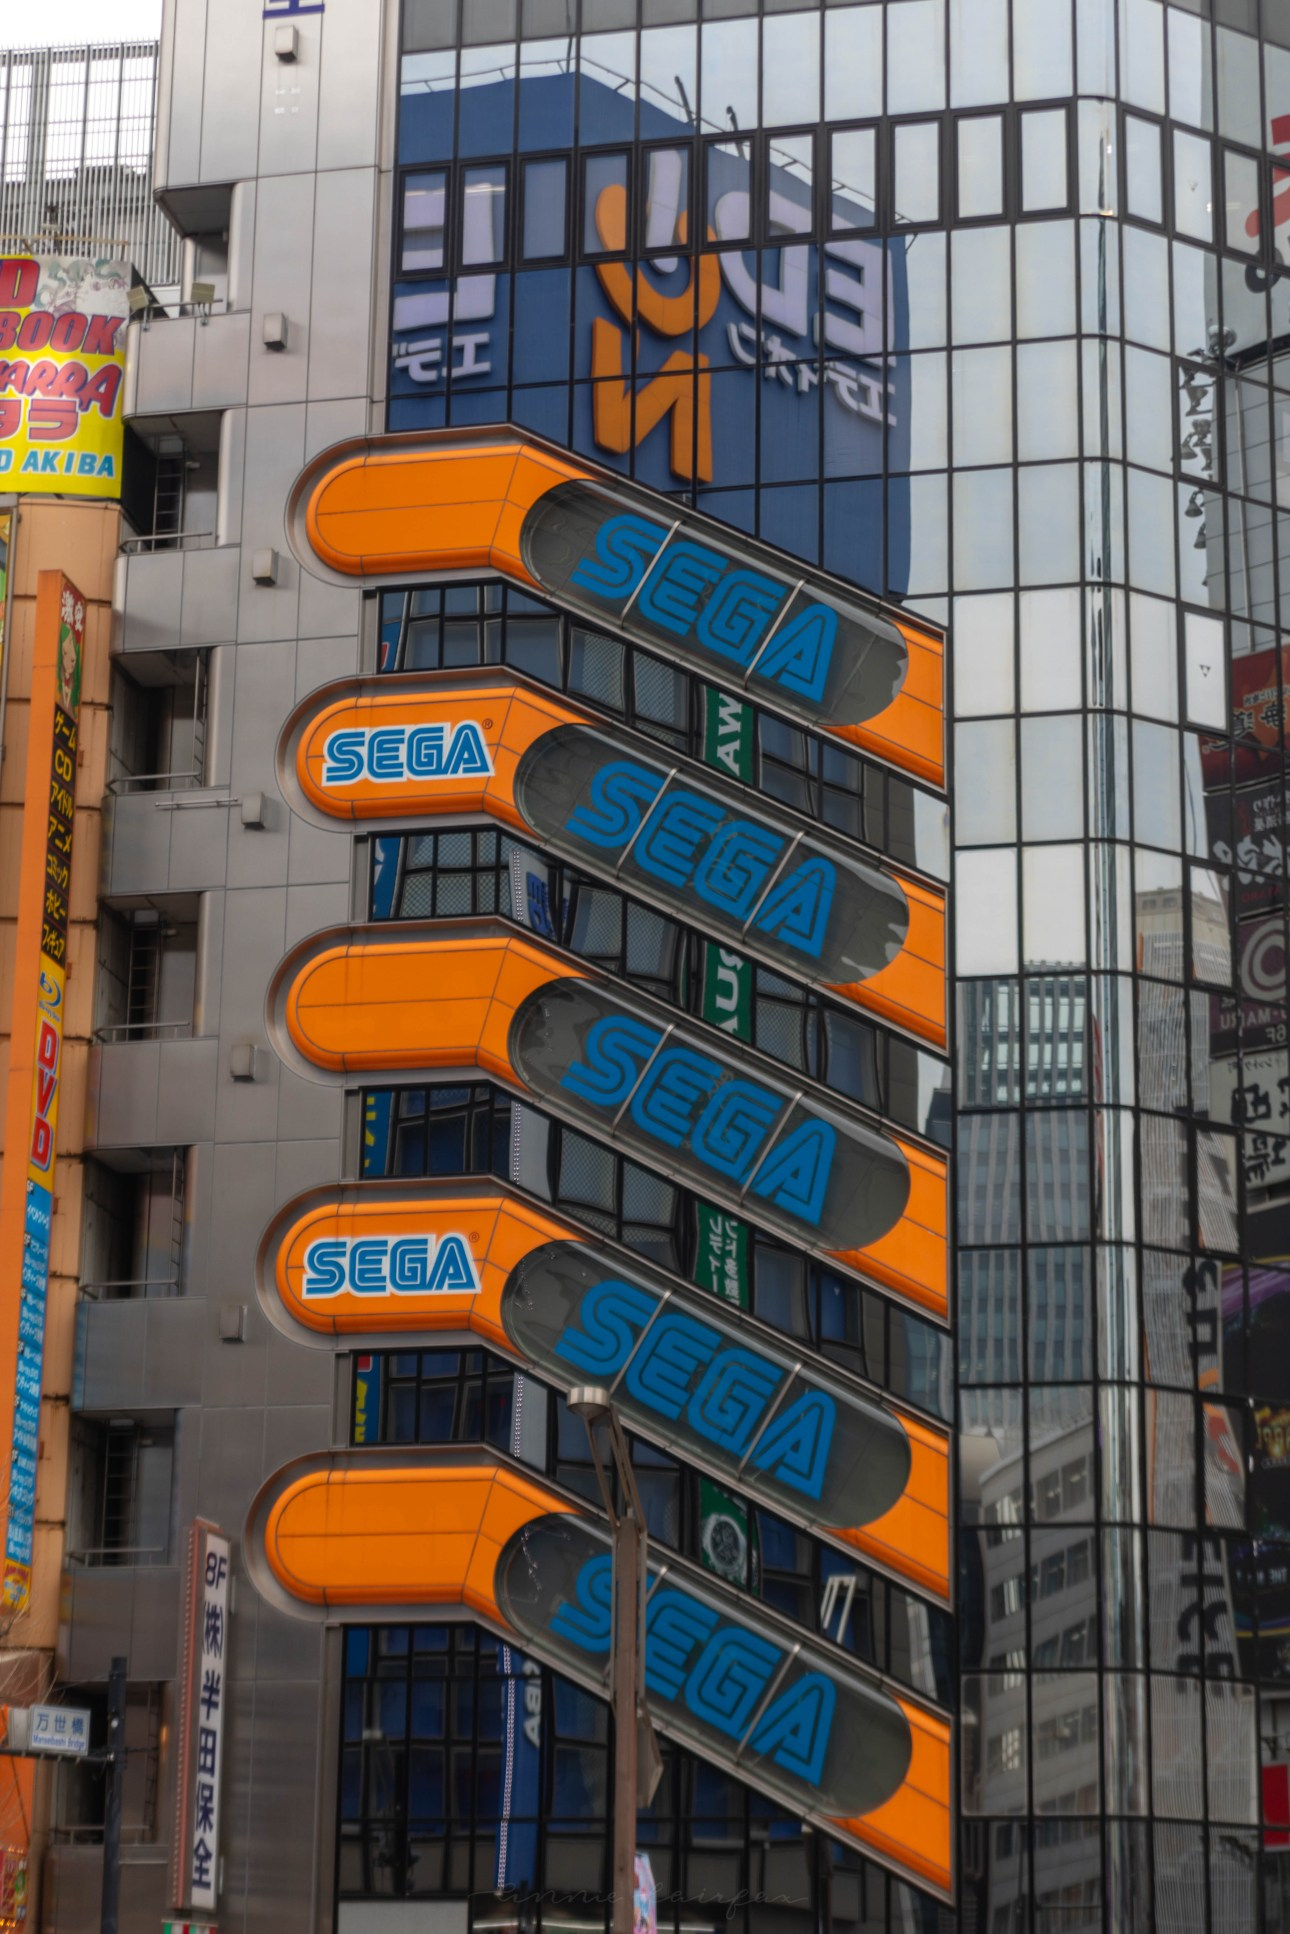 Sega Store in Akihabara Tokyo japan Tokyo, Japan: The Official Travel Guide Photographed, Researched, and Written by Annie Fairfax What to Do in Japan, Where to Eat in Tokyo, What to do in Tokyo, Things to Do in Tokyo, Tokyo Tourism, Places to Stay in Tokyo Tokyo Luxury Travel